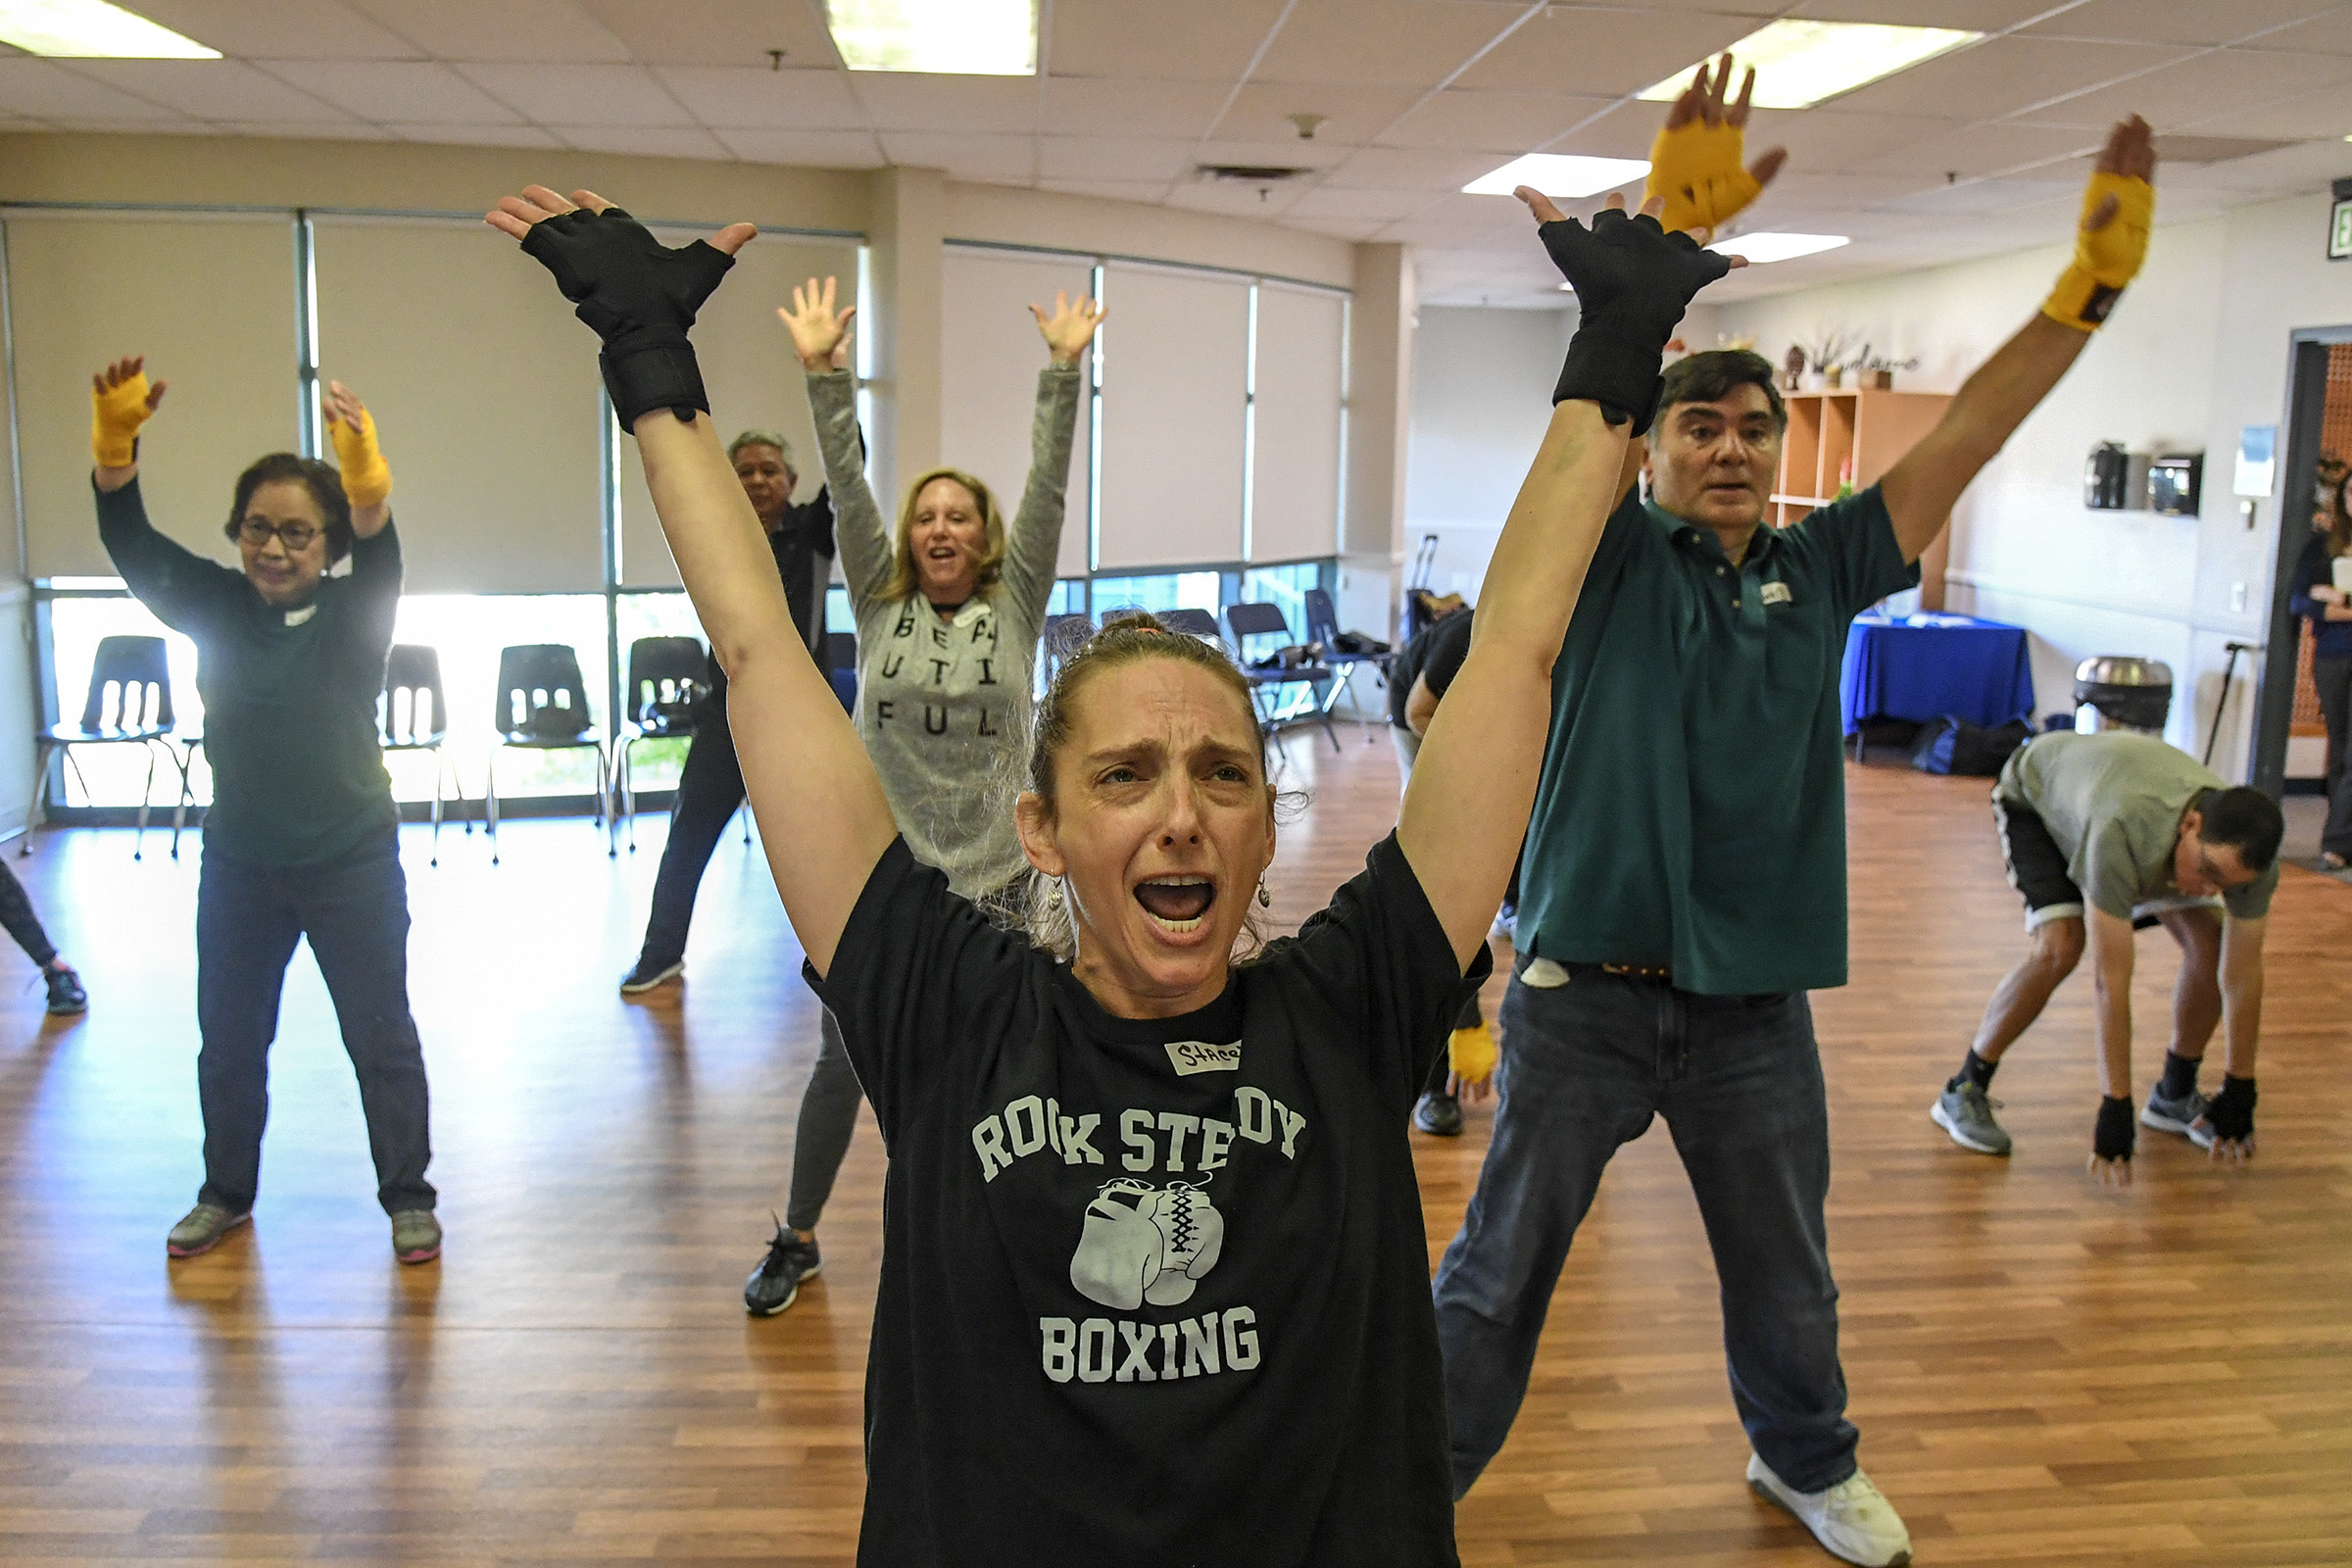 Stacey Macaluso, 49, leads her Rock Steady Boxing class at the Katz Jewish Community Center in Cherry Hill, NJ for people fighting the degenerative neurological effects of Parkinson´s Disease.